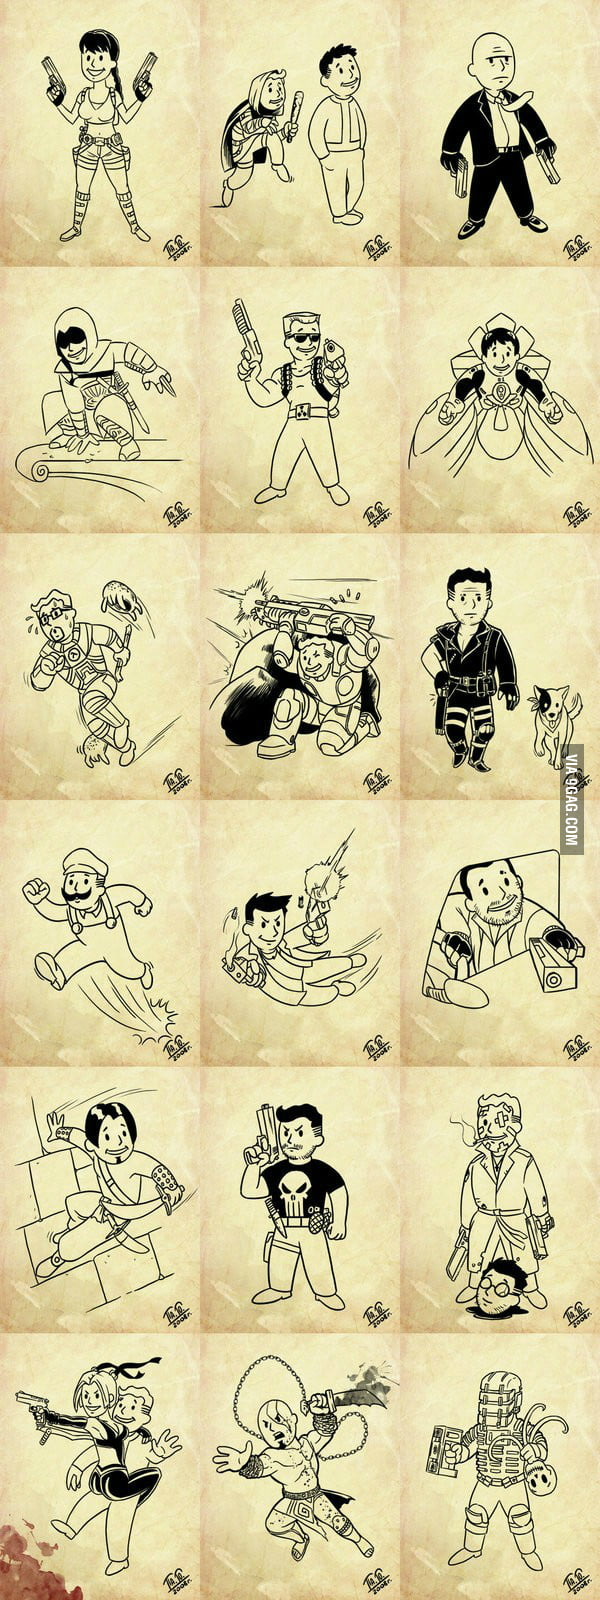 All the characters of the awesome games